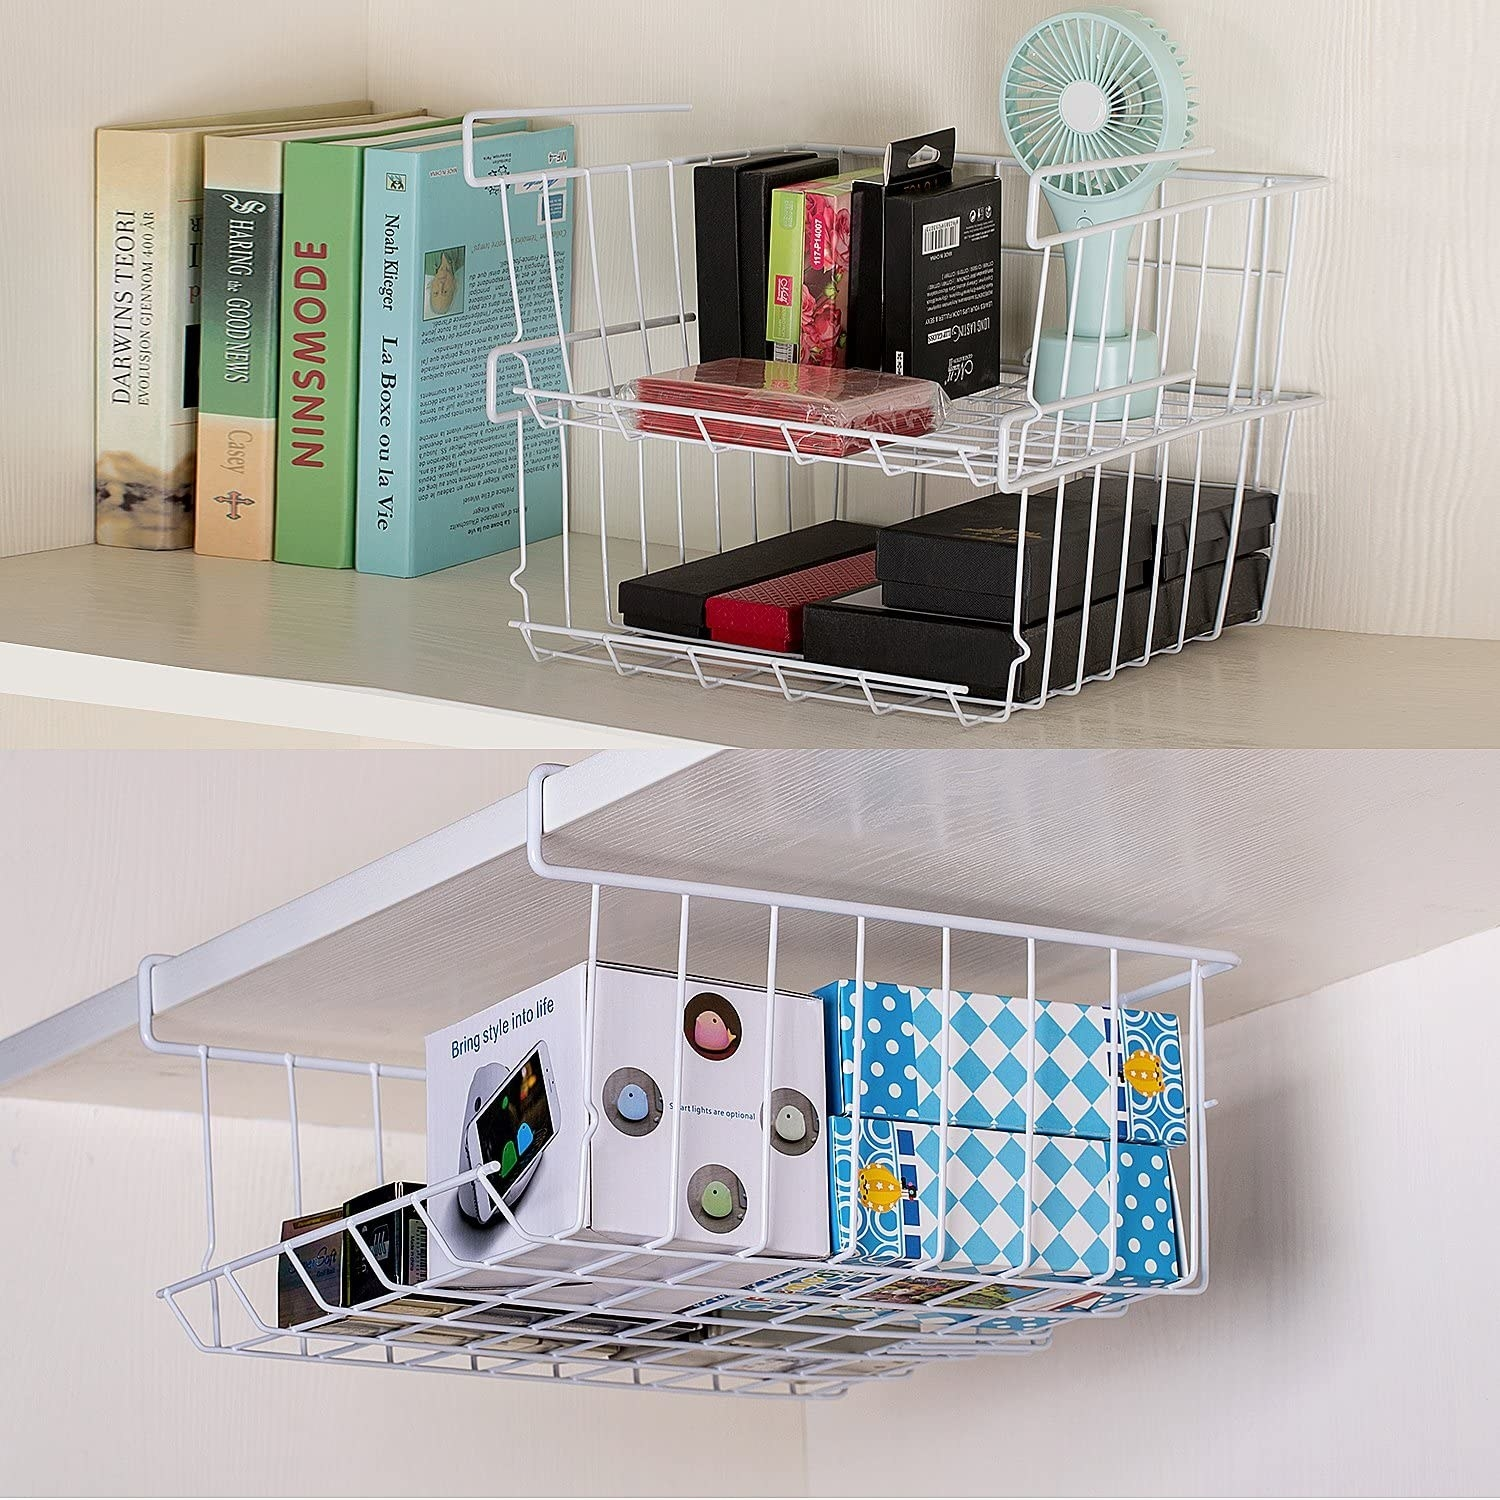 the basket underneath a shelf and stacked on top of each other